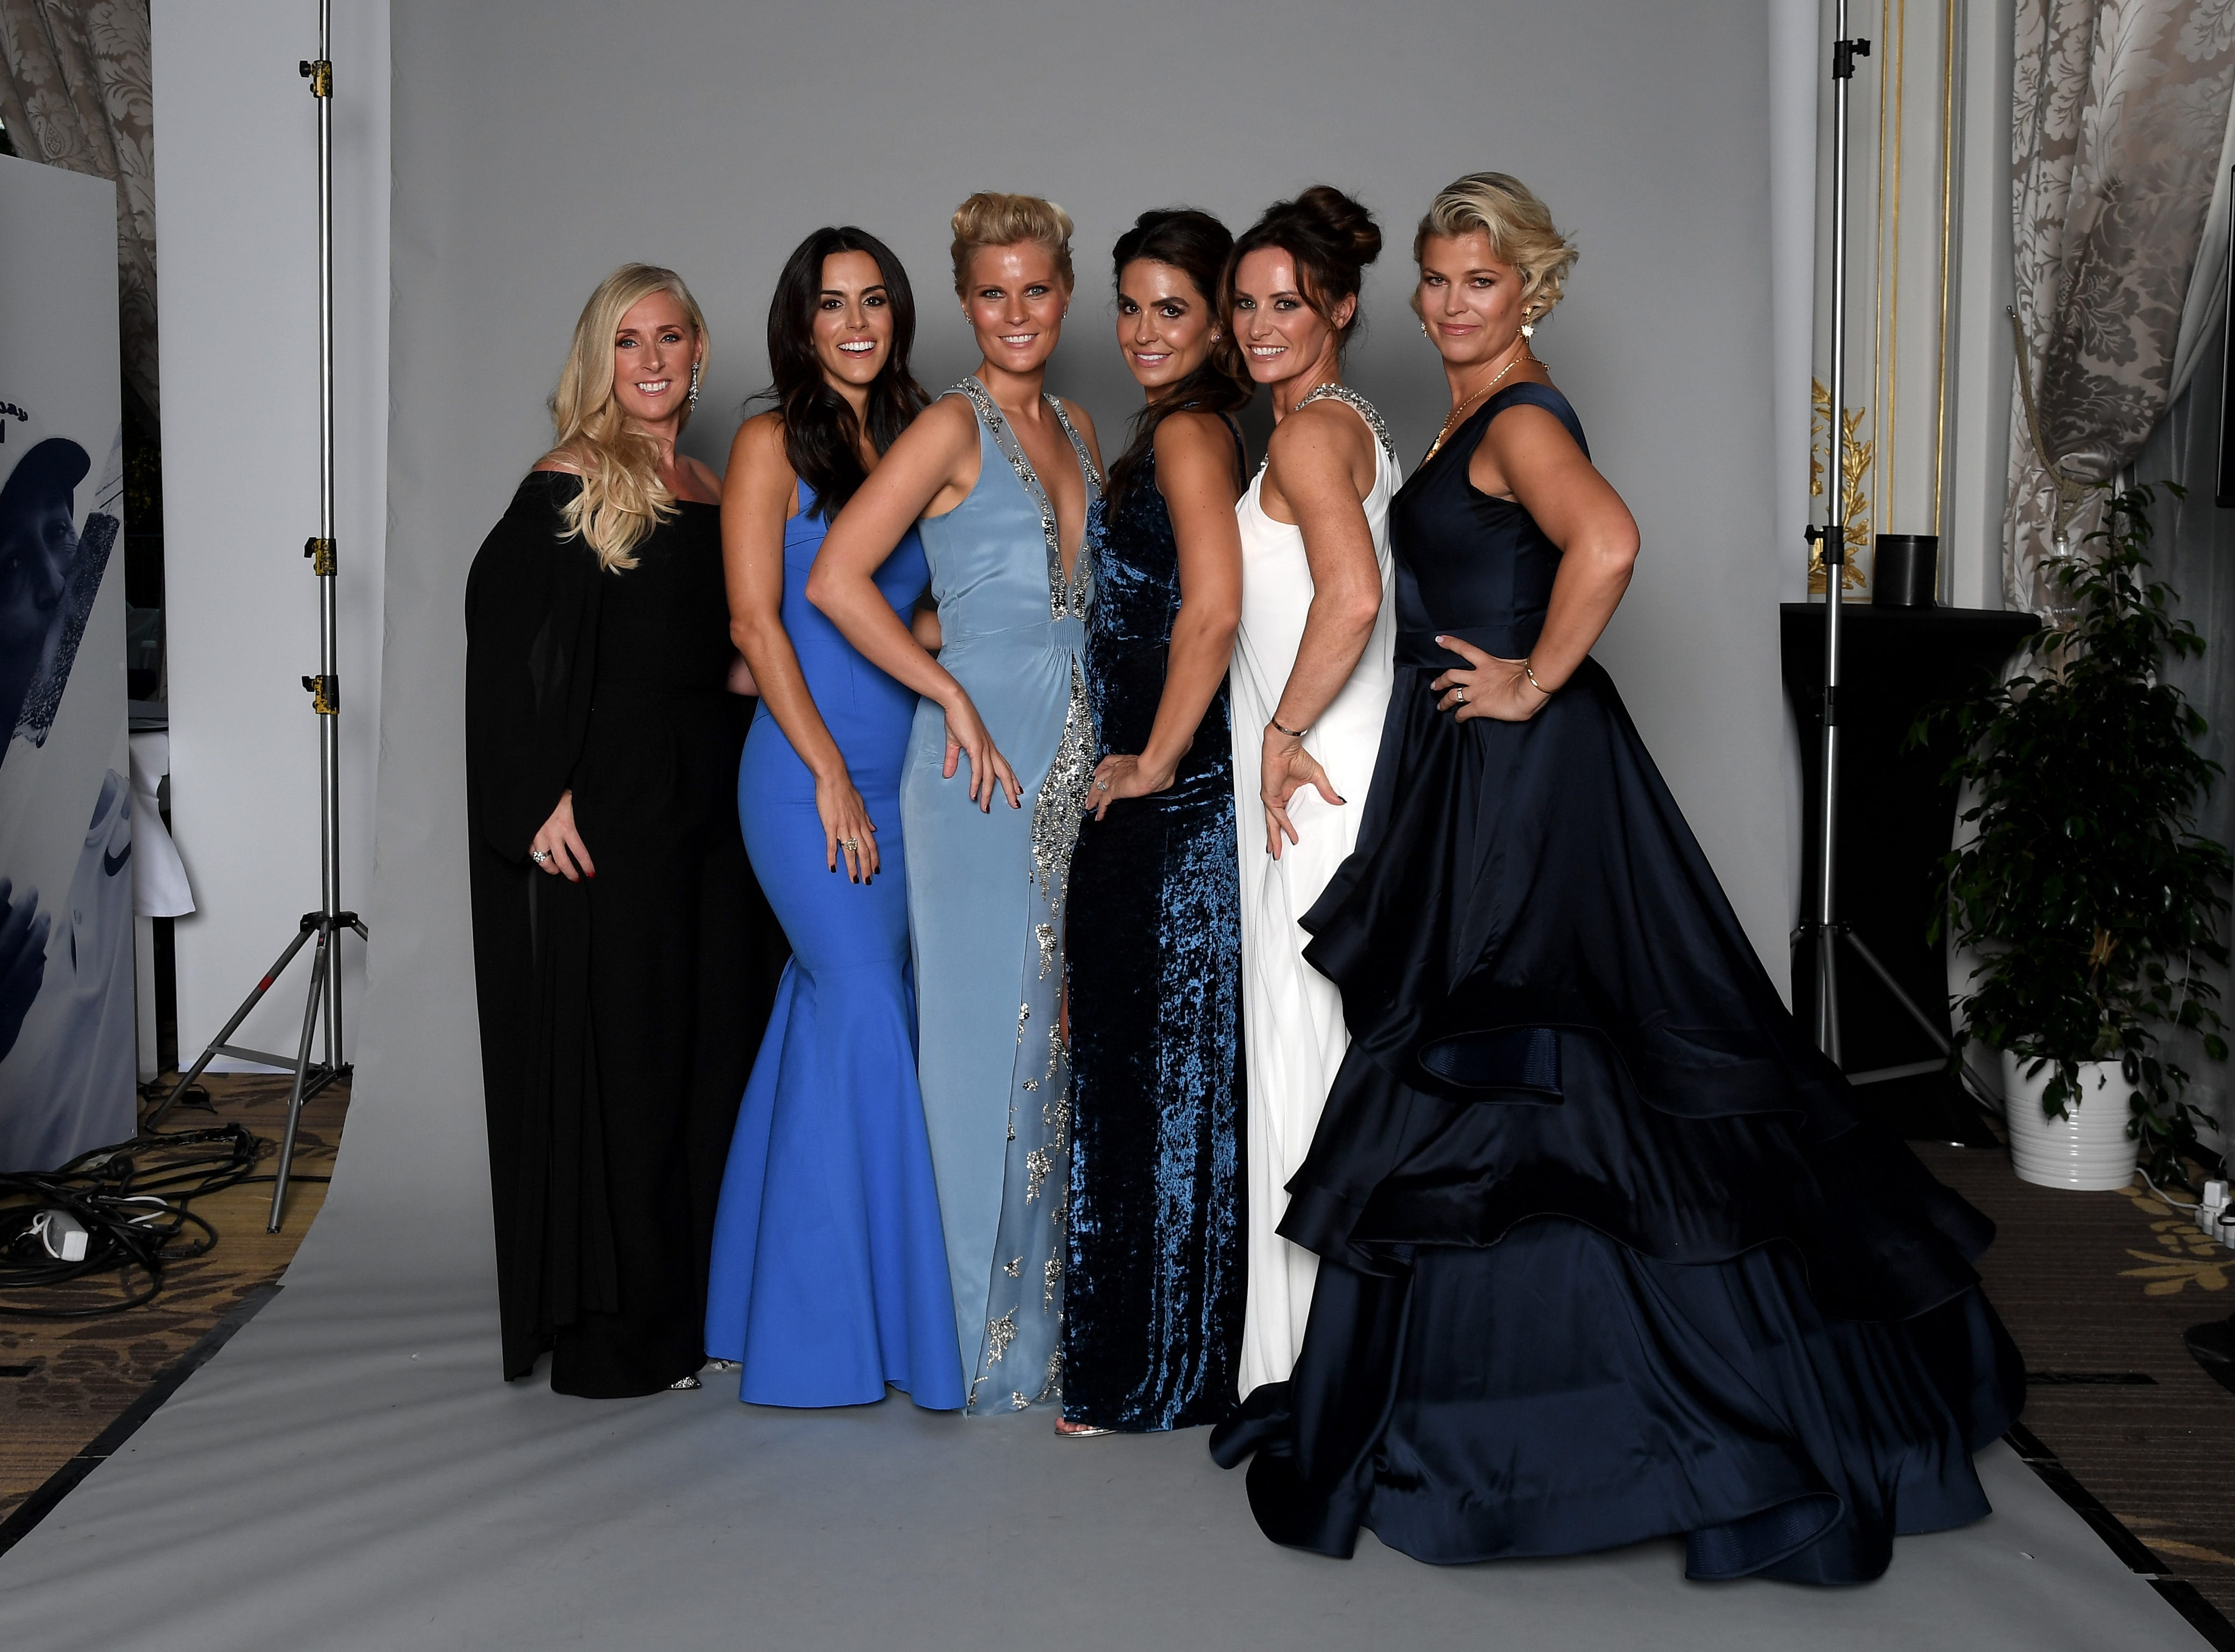 From left, Caroline Harrington, Diane Donald, Grace Barber Kristin McDowell, Helen Storey and Ebba Karlsson pose for a portrait before Ryder Cup gala on Sept. 26.